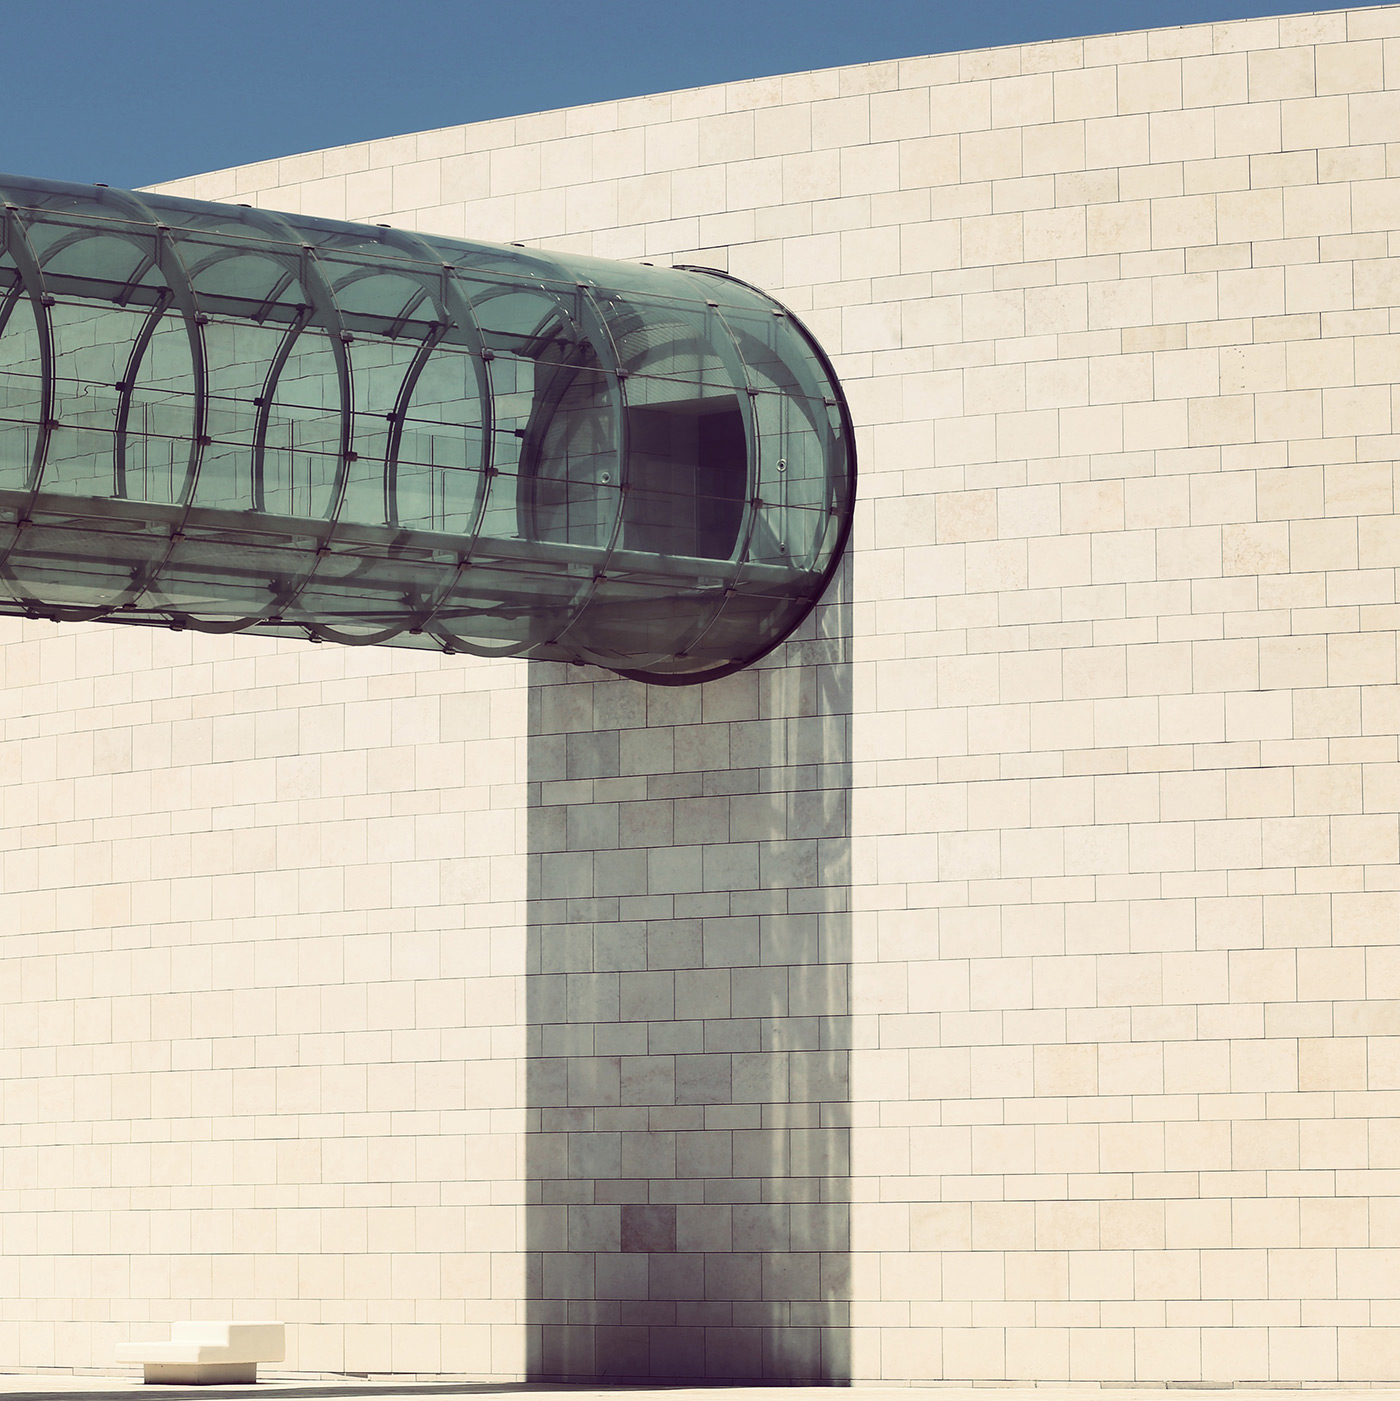 Champalimaud Center for the Unknown <br />Location: Lisbon, Portugal <br />Architect: Charles Correa Associates